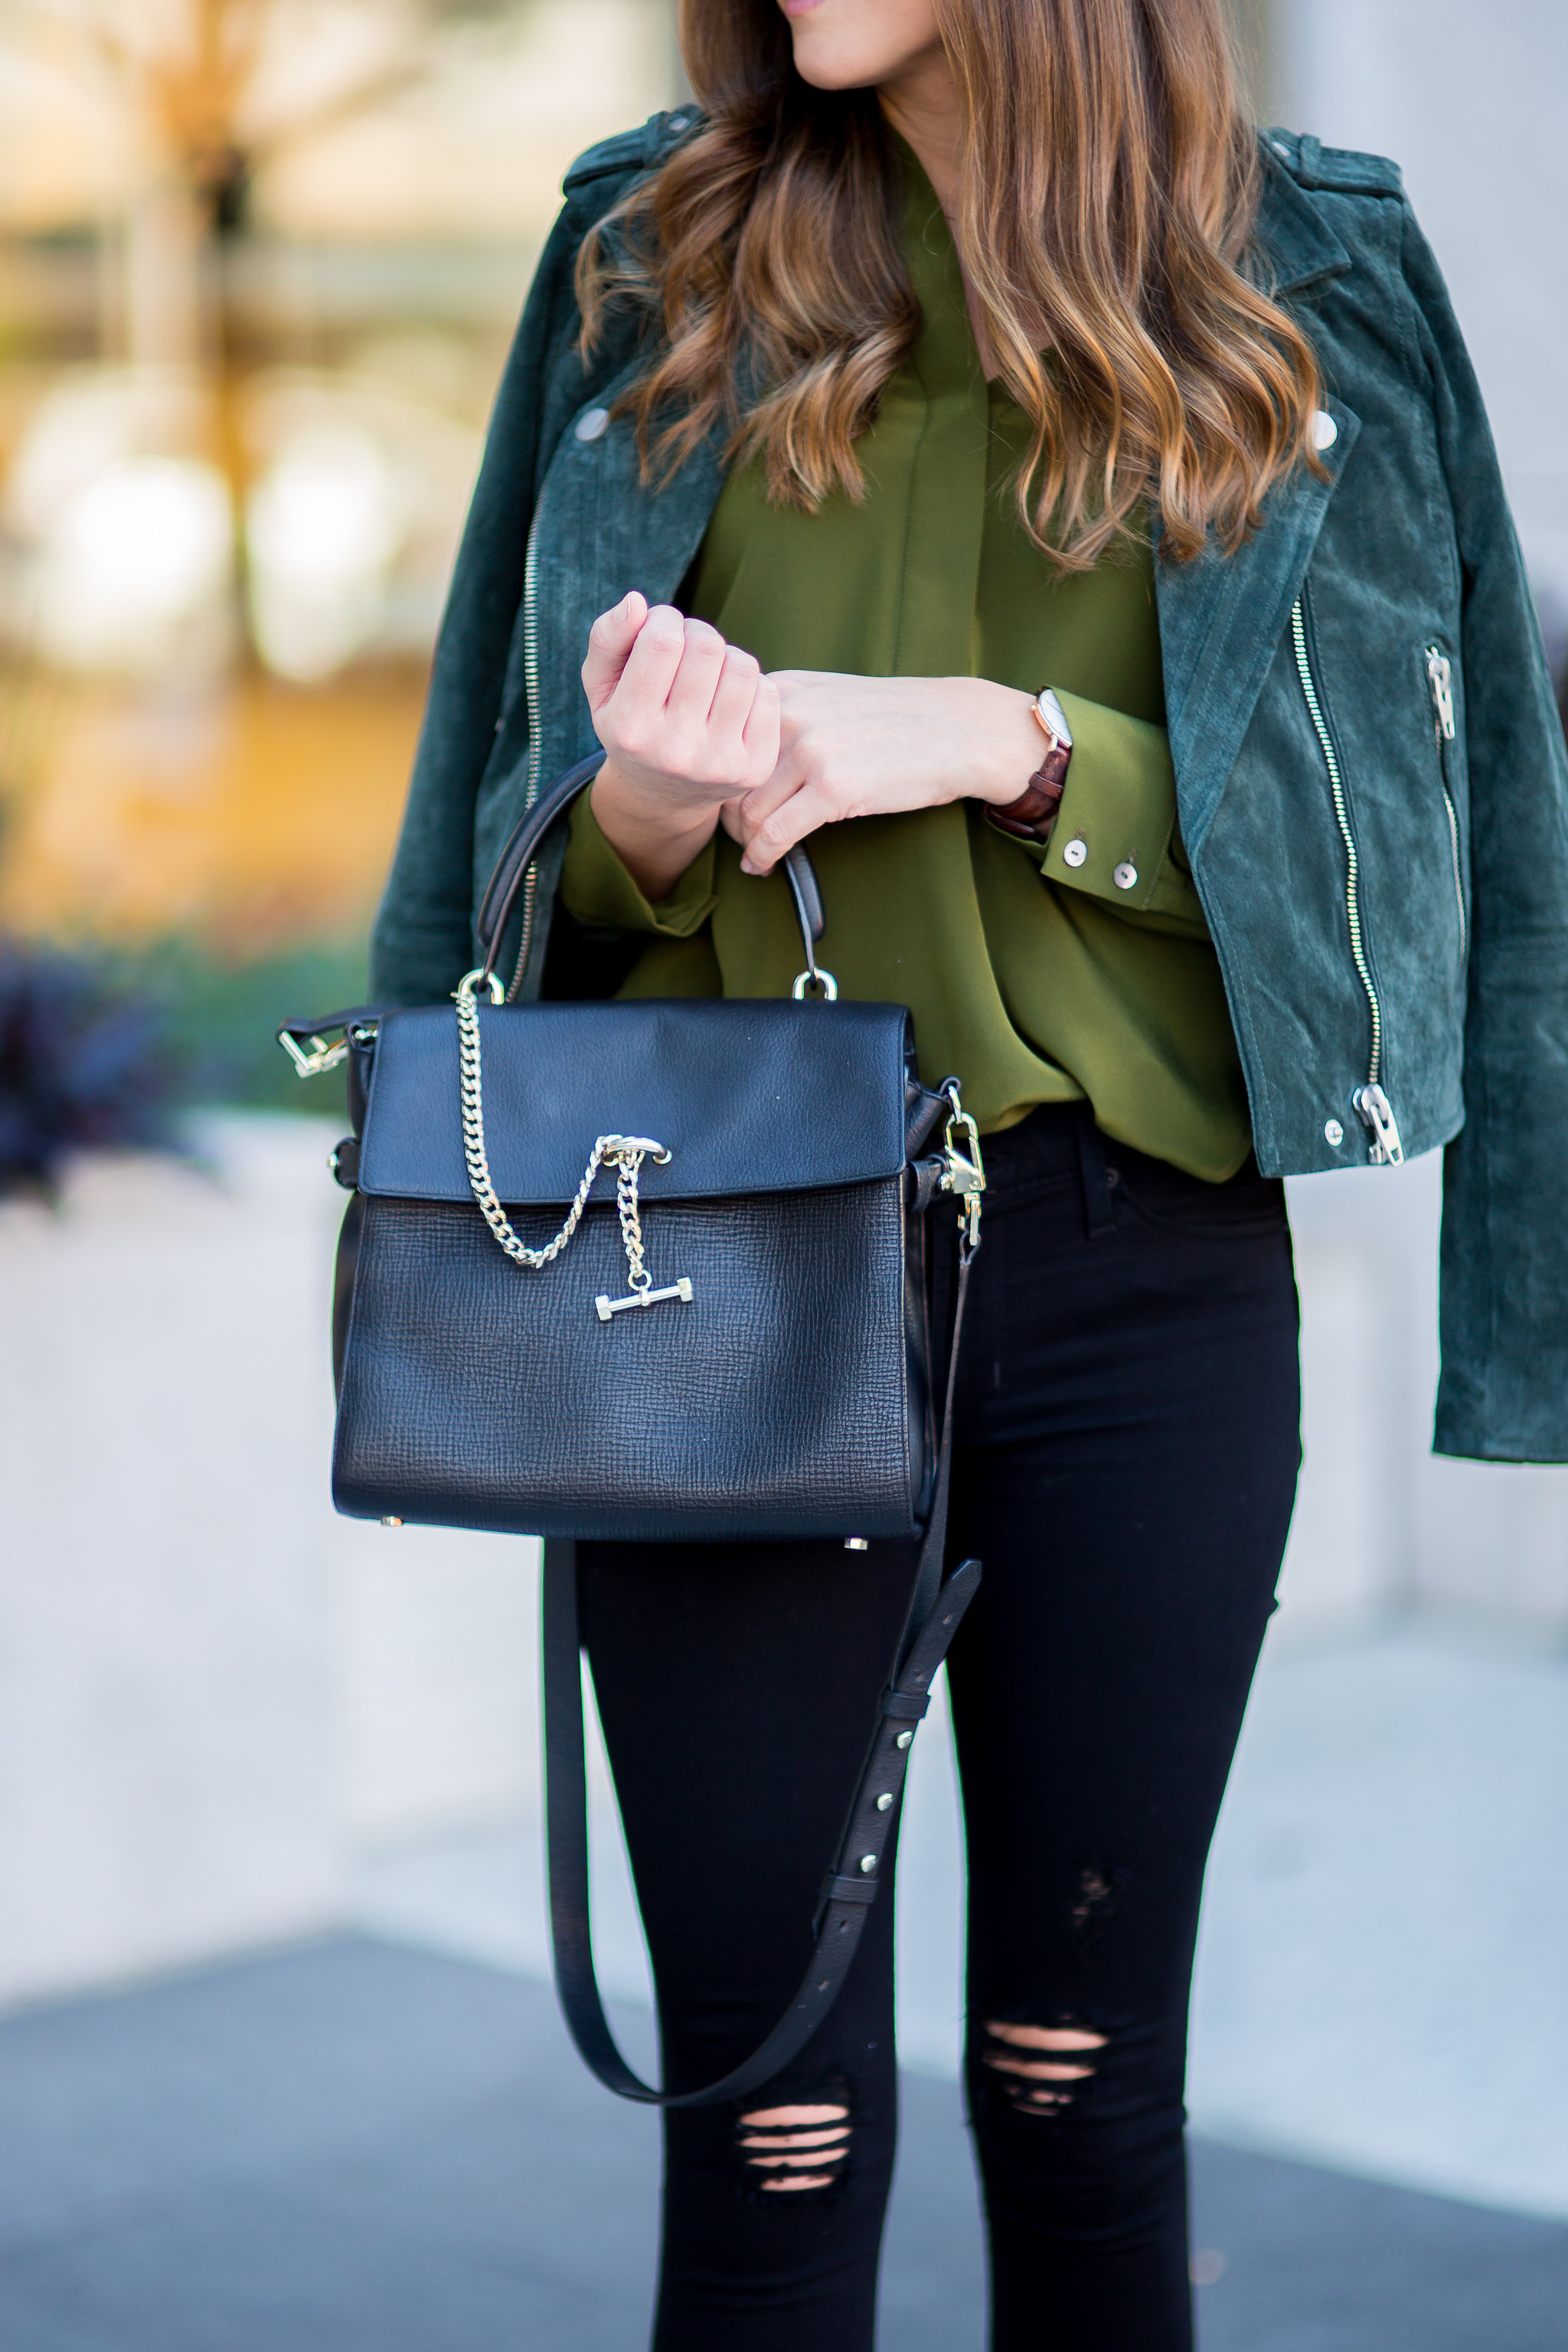 Shop the Look Below. Top:  Amour Vert  c/o. Jeans. Hudson. Similar  here . Jacket: Tj Maxx. Similar  here . Booties:  Coconuts by Matisse . Bag:  Luana Italy  c/o. Watch:  Daniel Wellington  c/o. Photos by  Baley Marie Photography